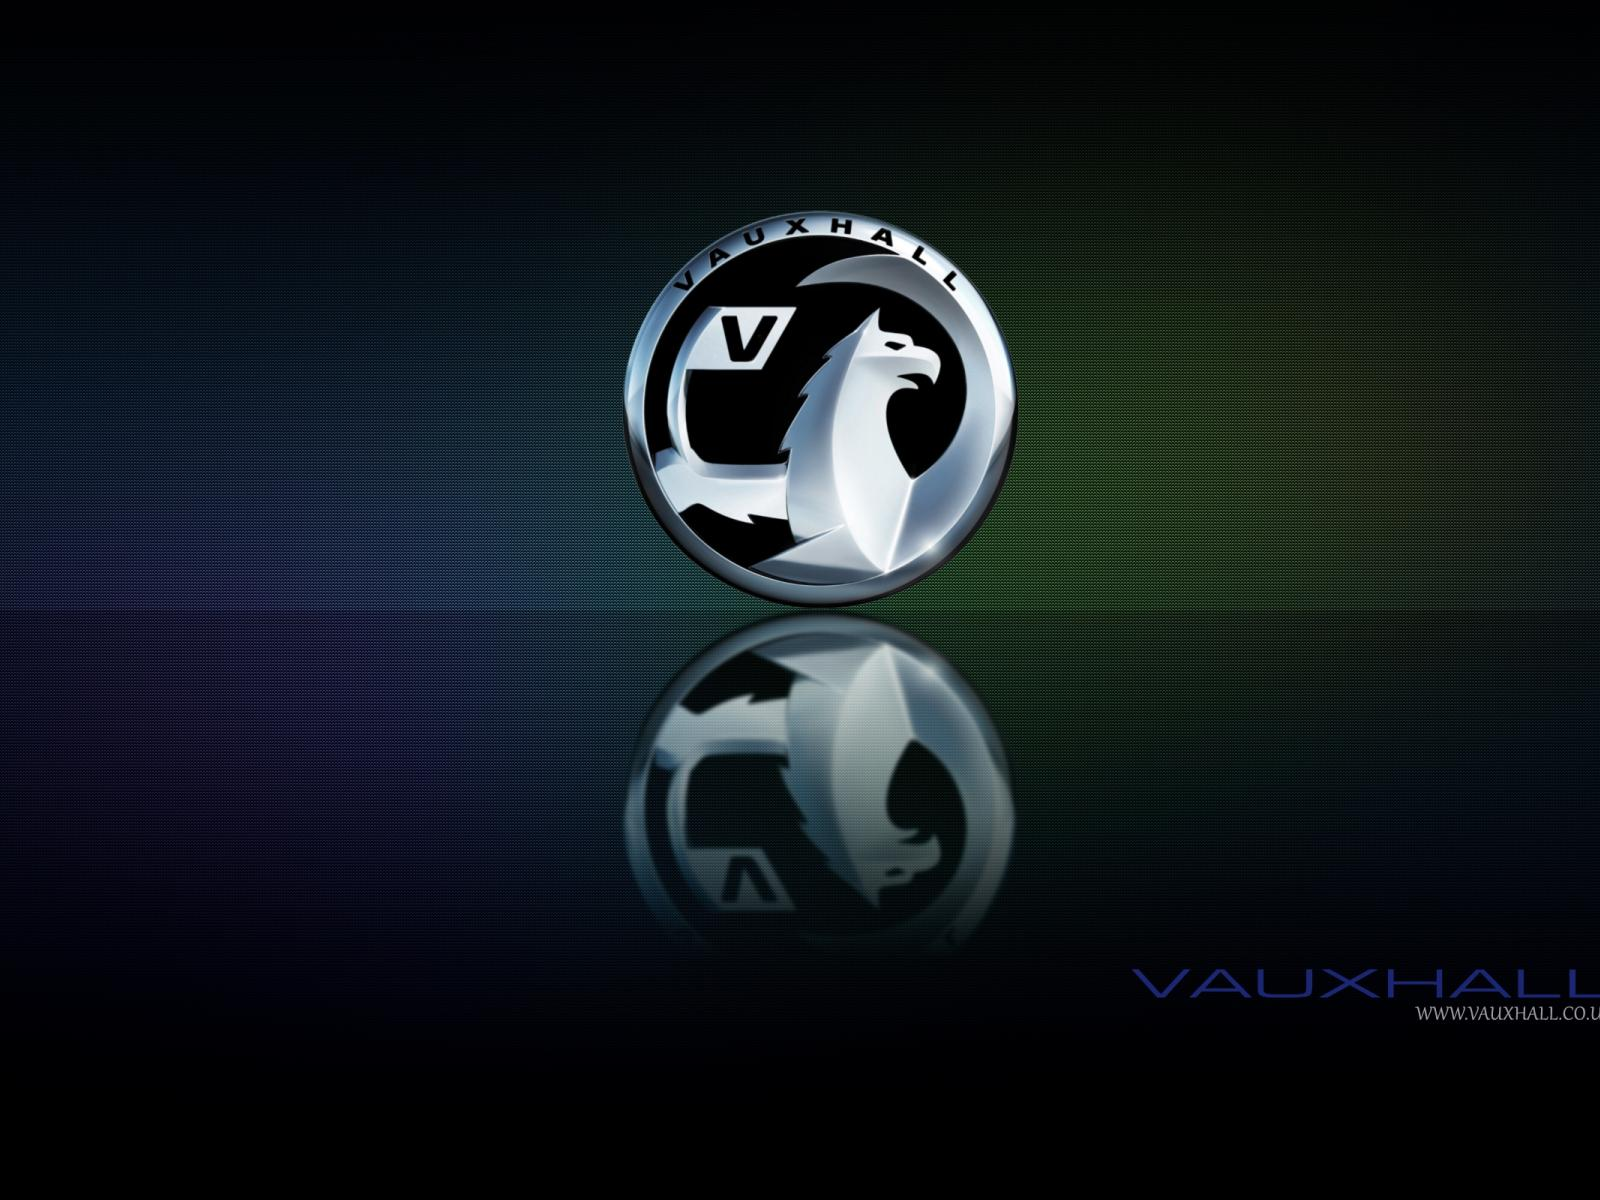 1600x1200 - Vauxhall Wallpapers 21